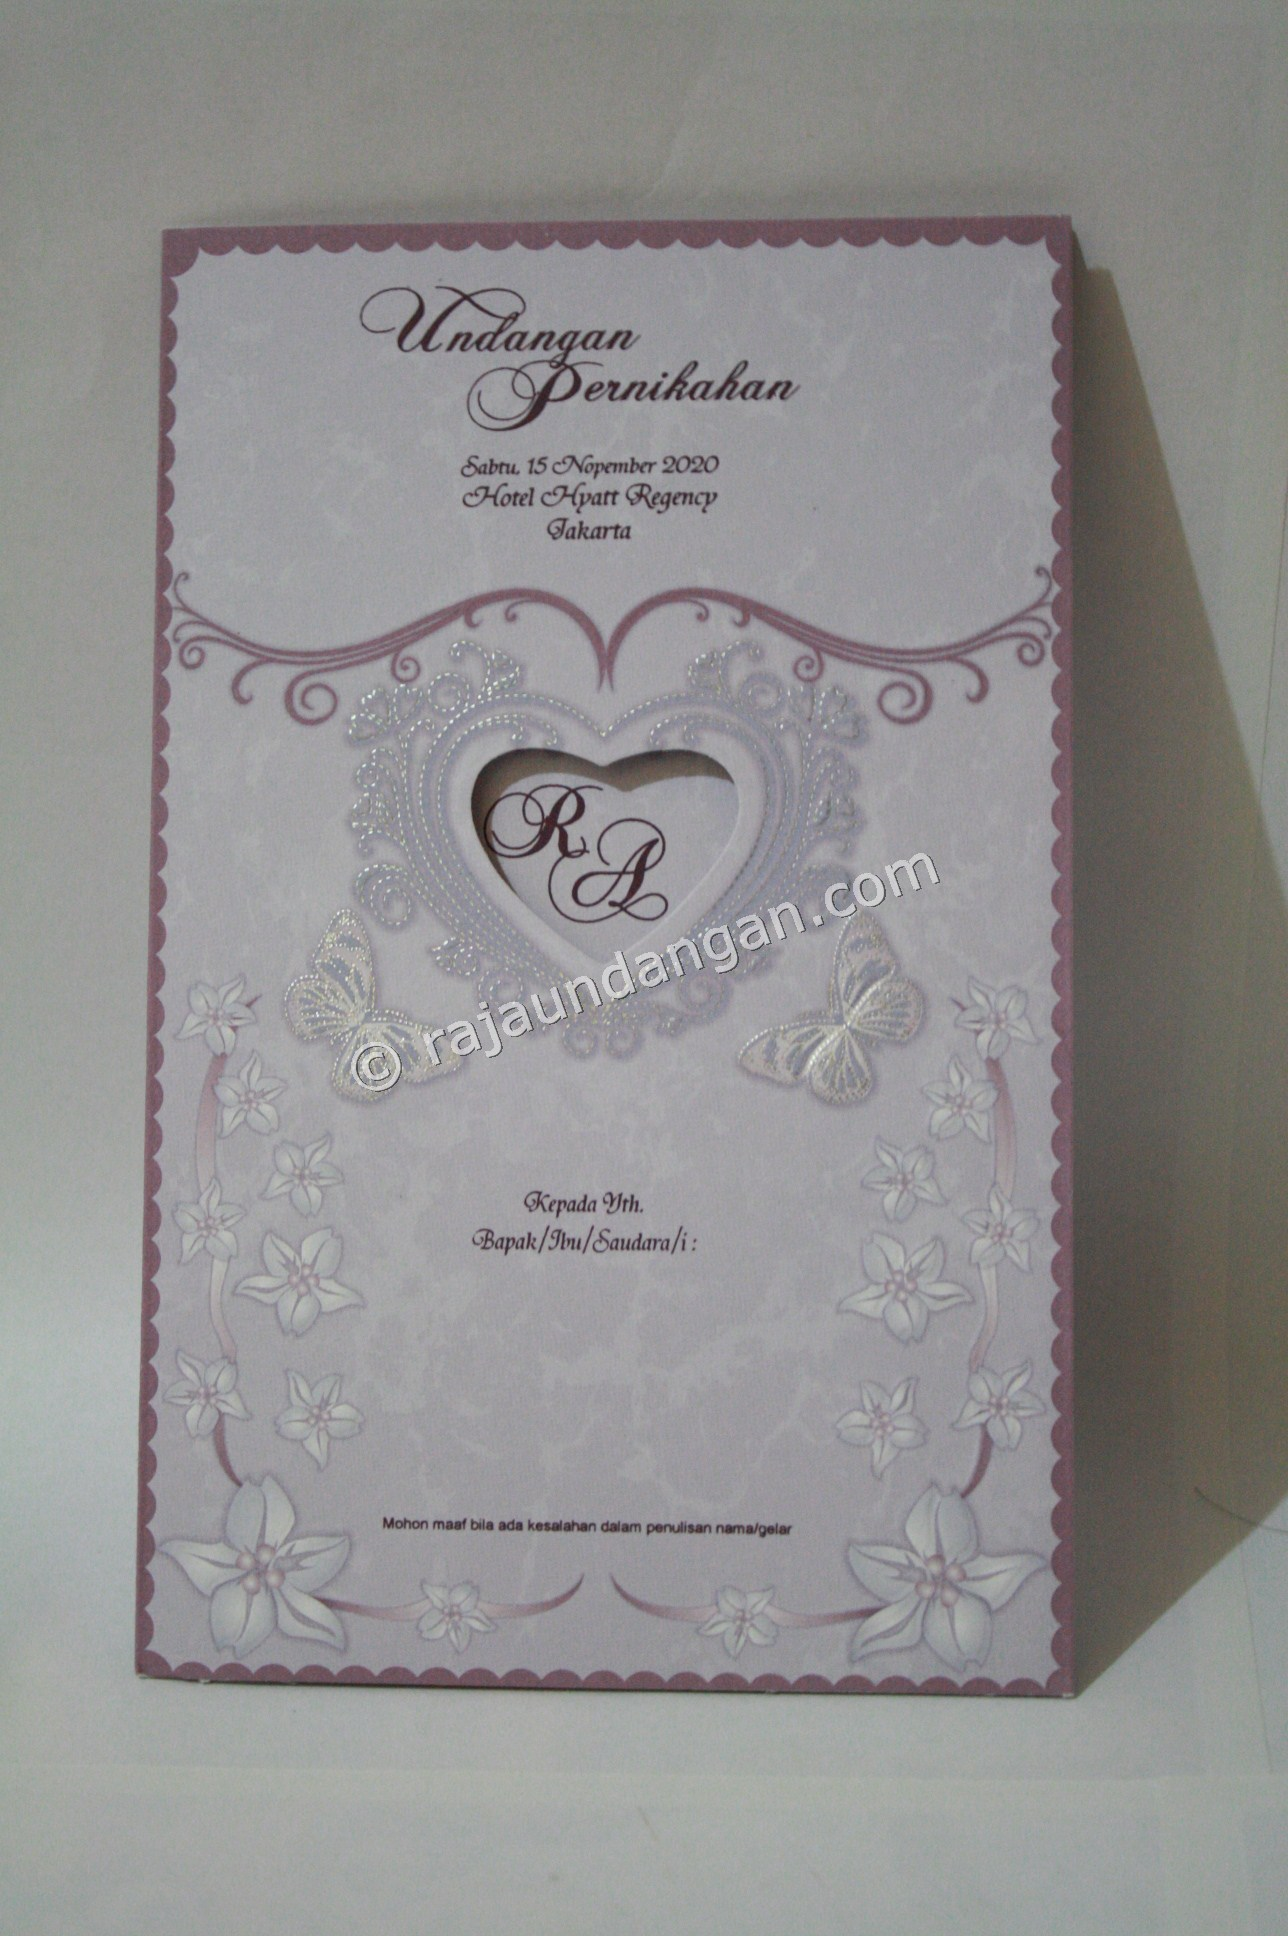 Undangan Pernikahan Softcover ED 26 1 - Pesan Wedding Invitations Simple di Ploso